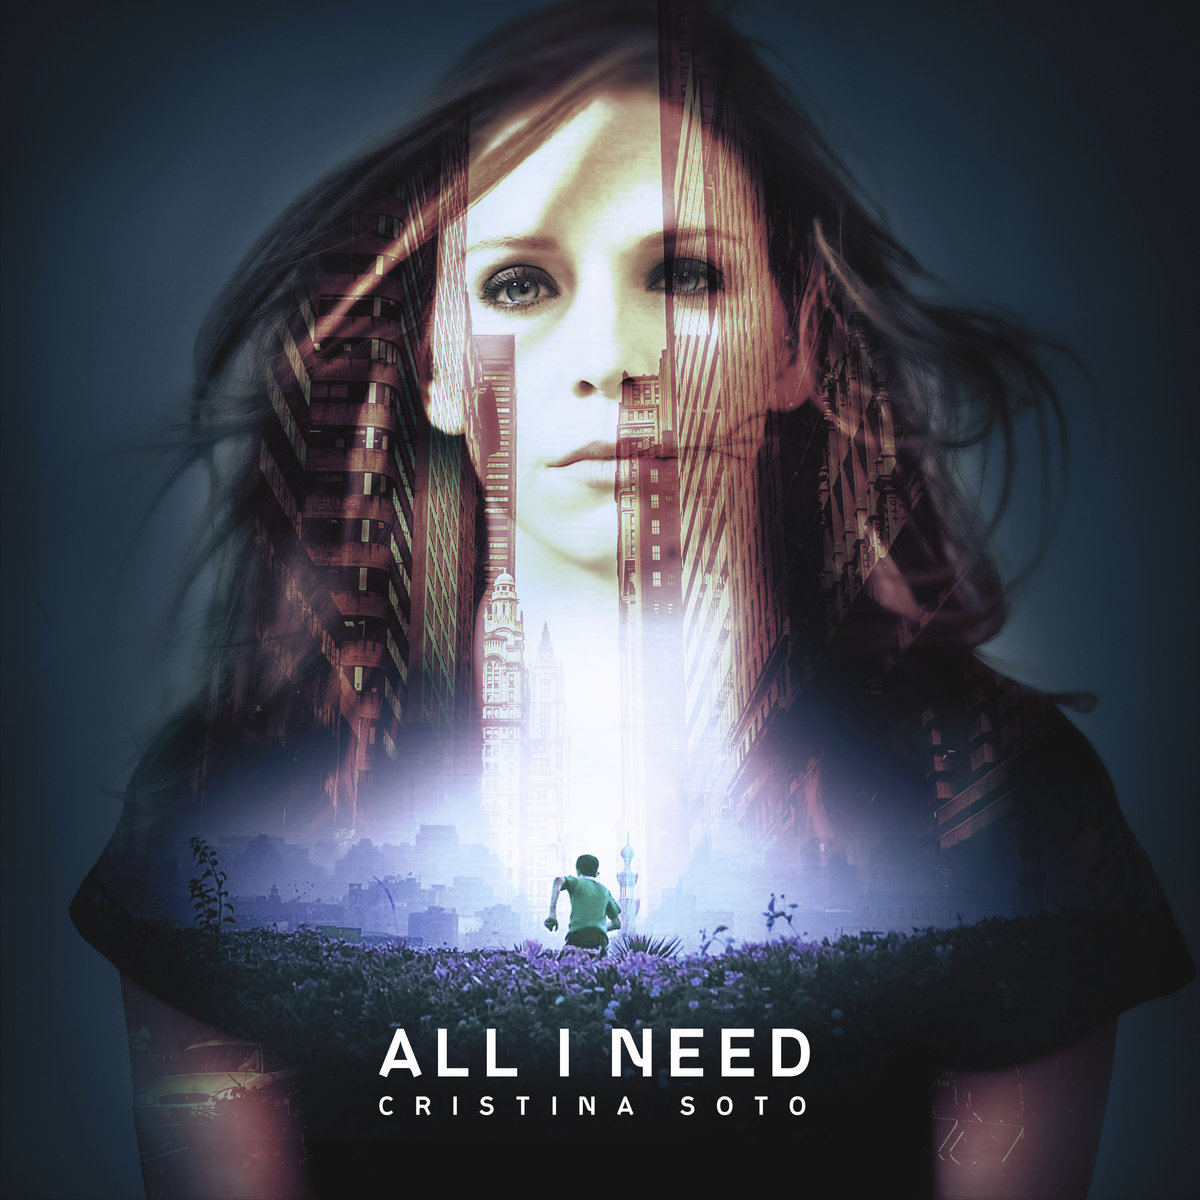 Cristina Soto & Gold VHS - All I Need (Chillout Mix) @ 'All I Need' album (Austin)